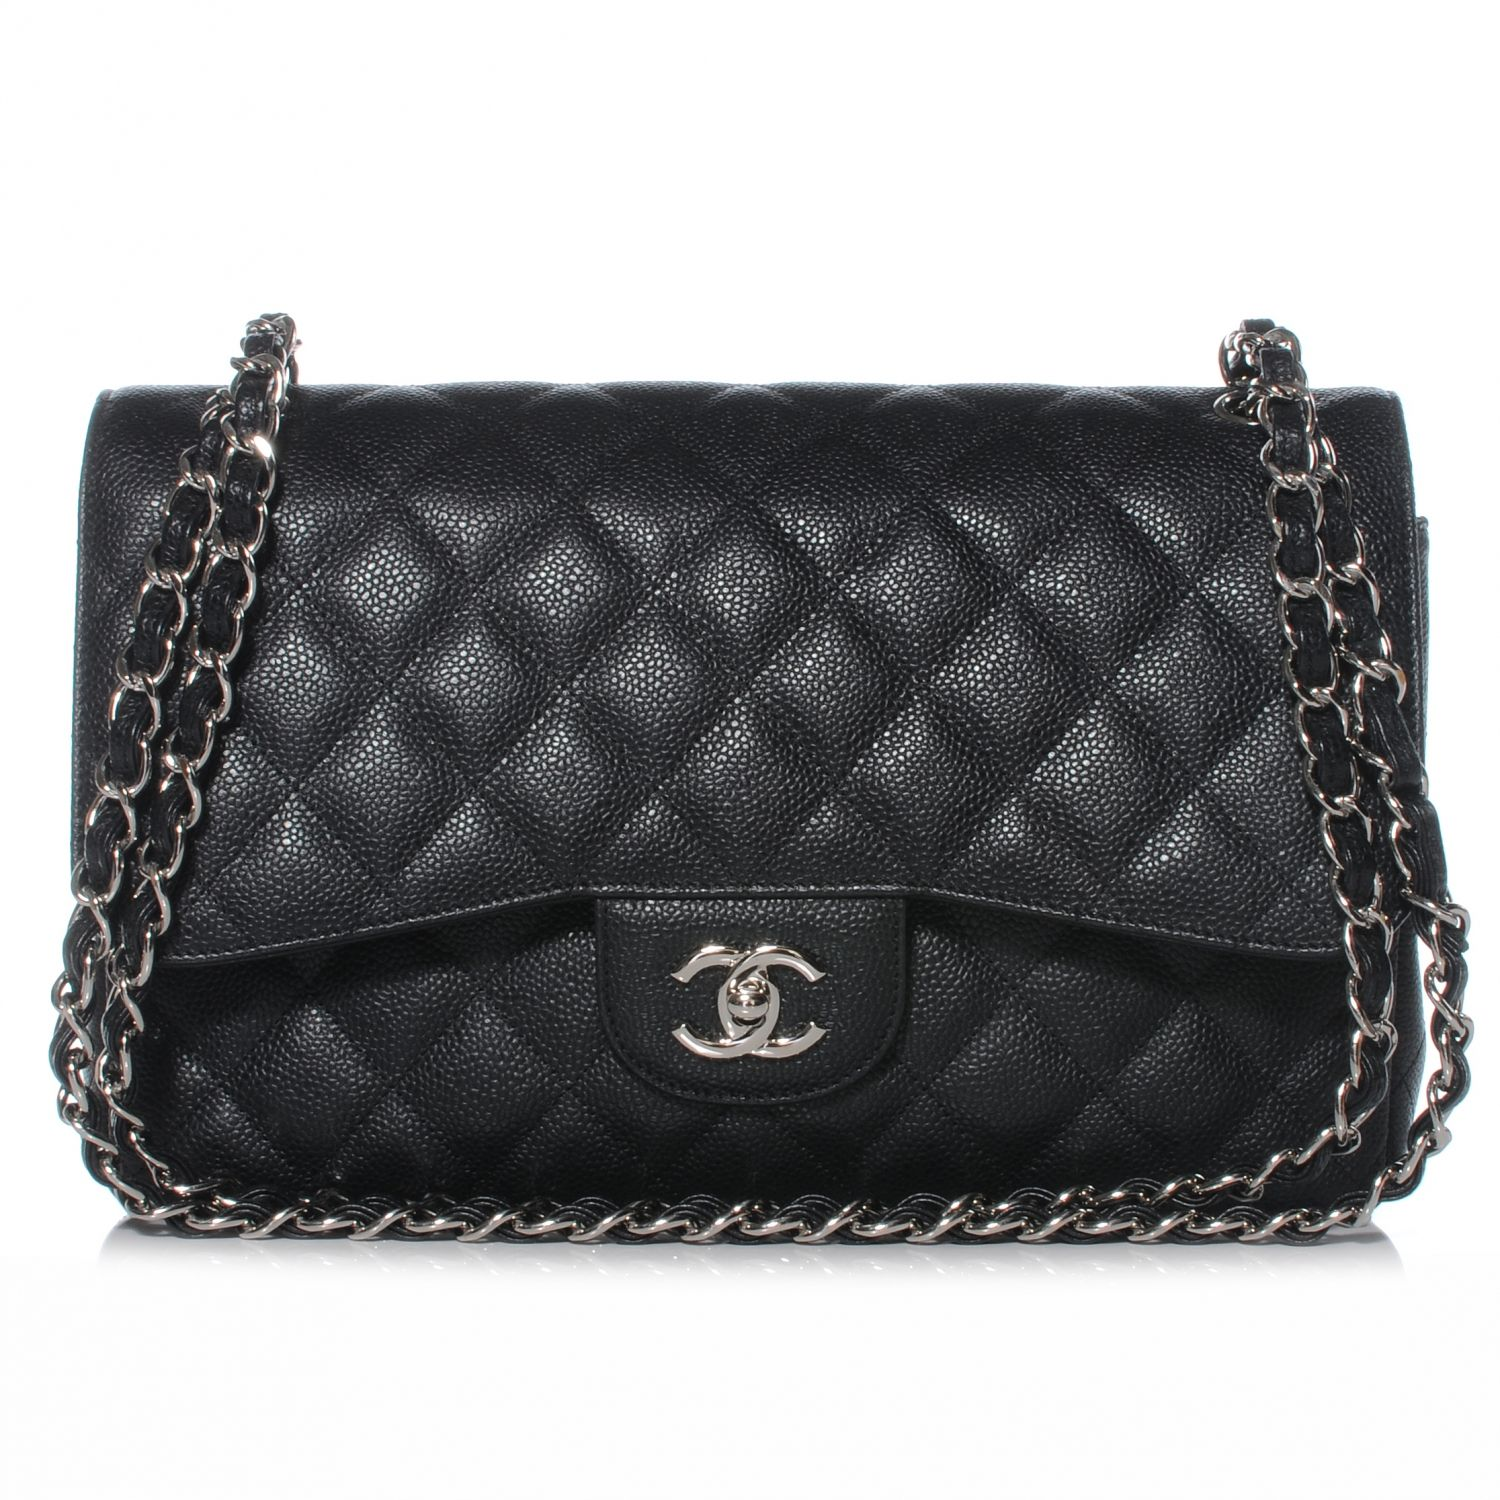 So many chanel maxi a47600 classic double flap bag sale